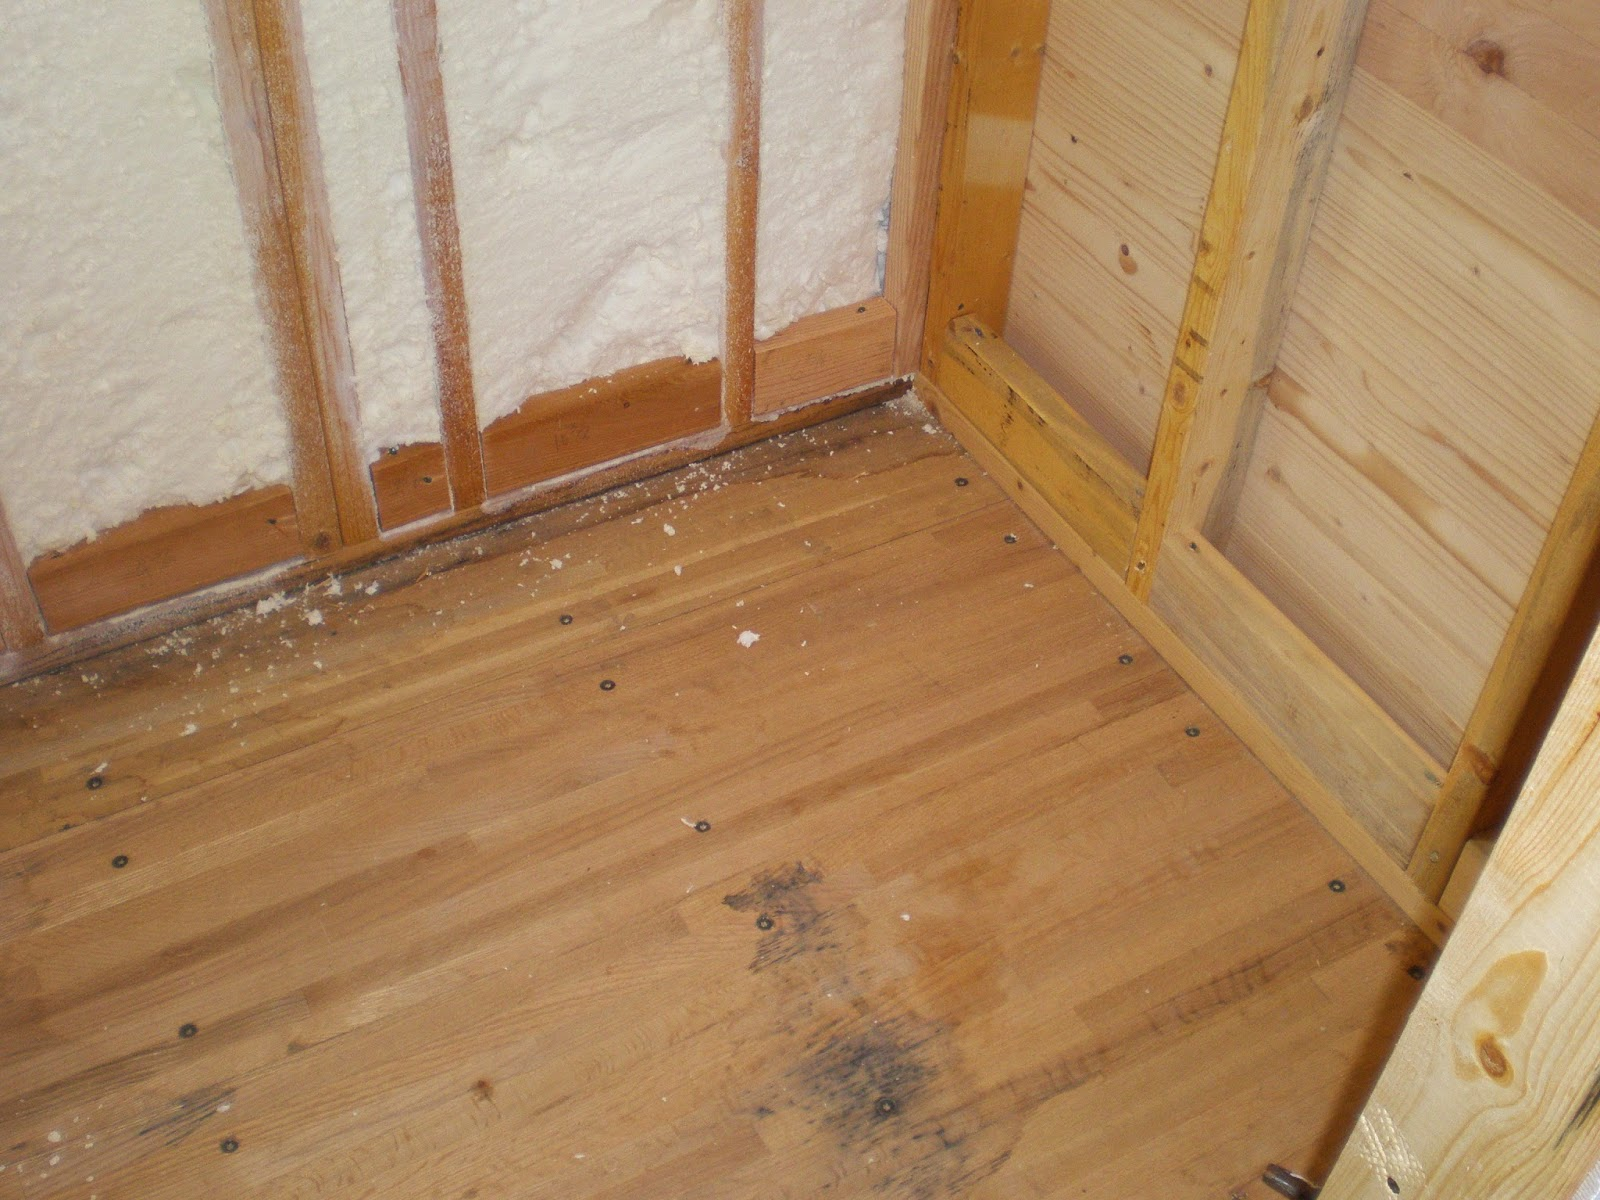 Bathroom Floor Build Up : A tiny home companion bathroom floor eck